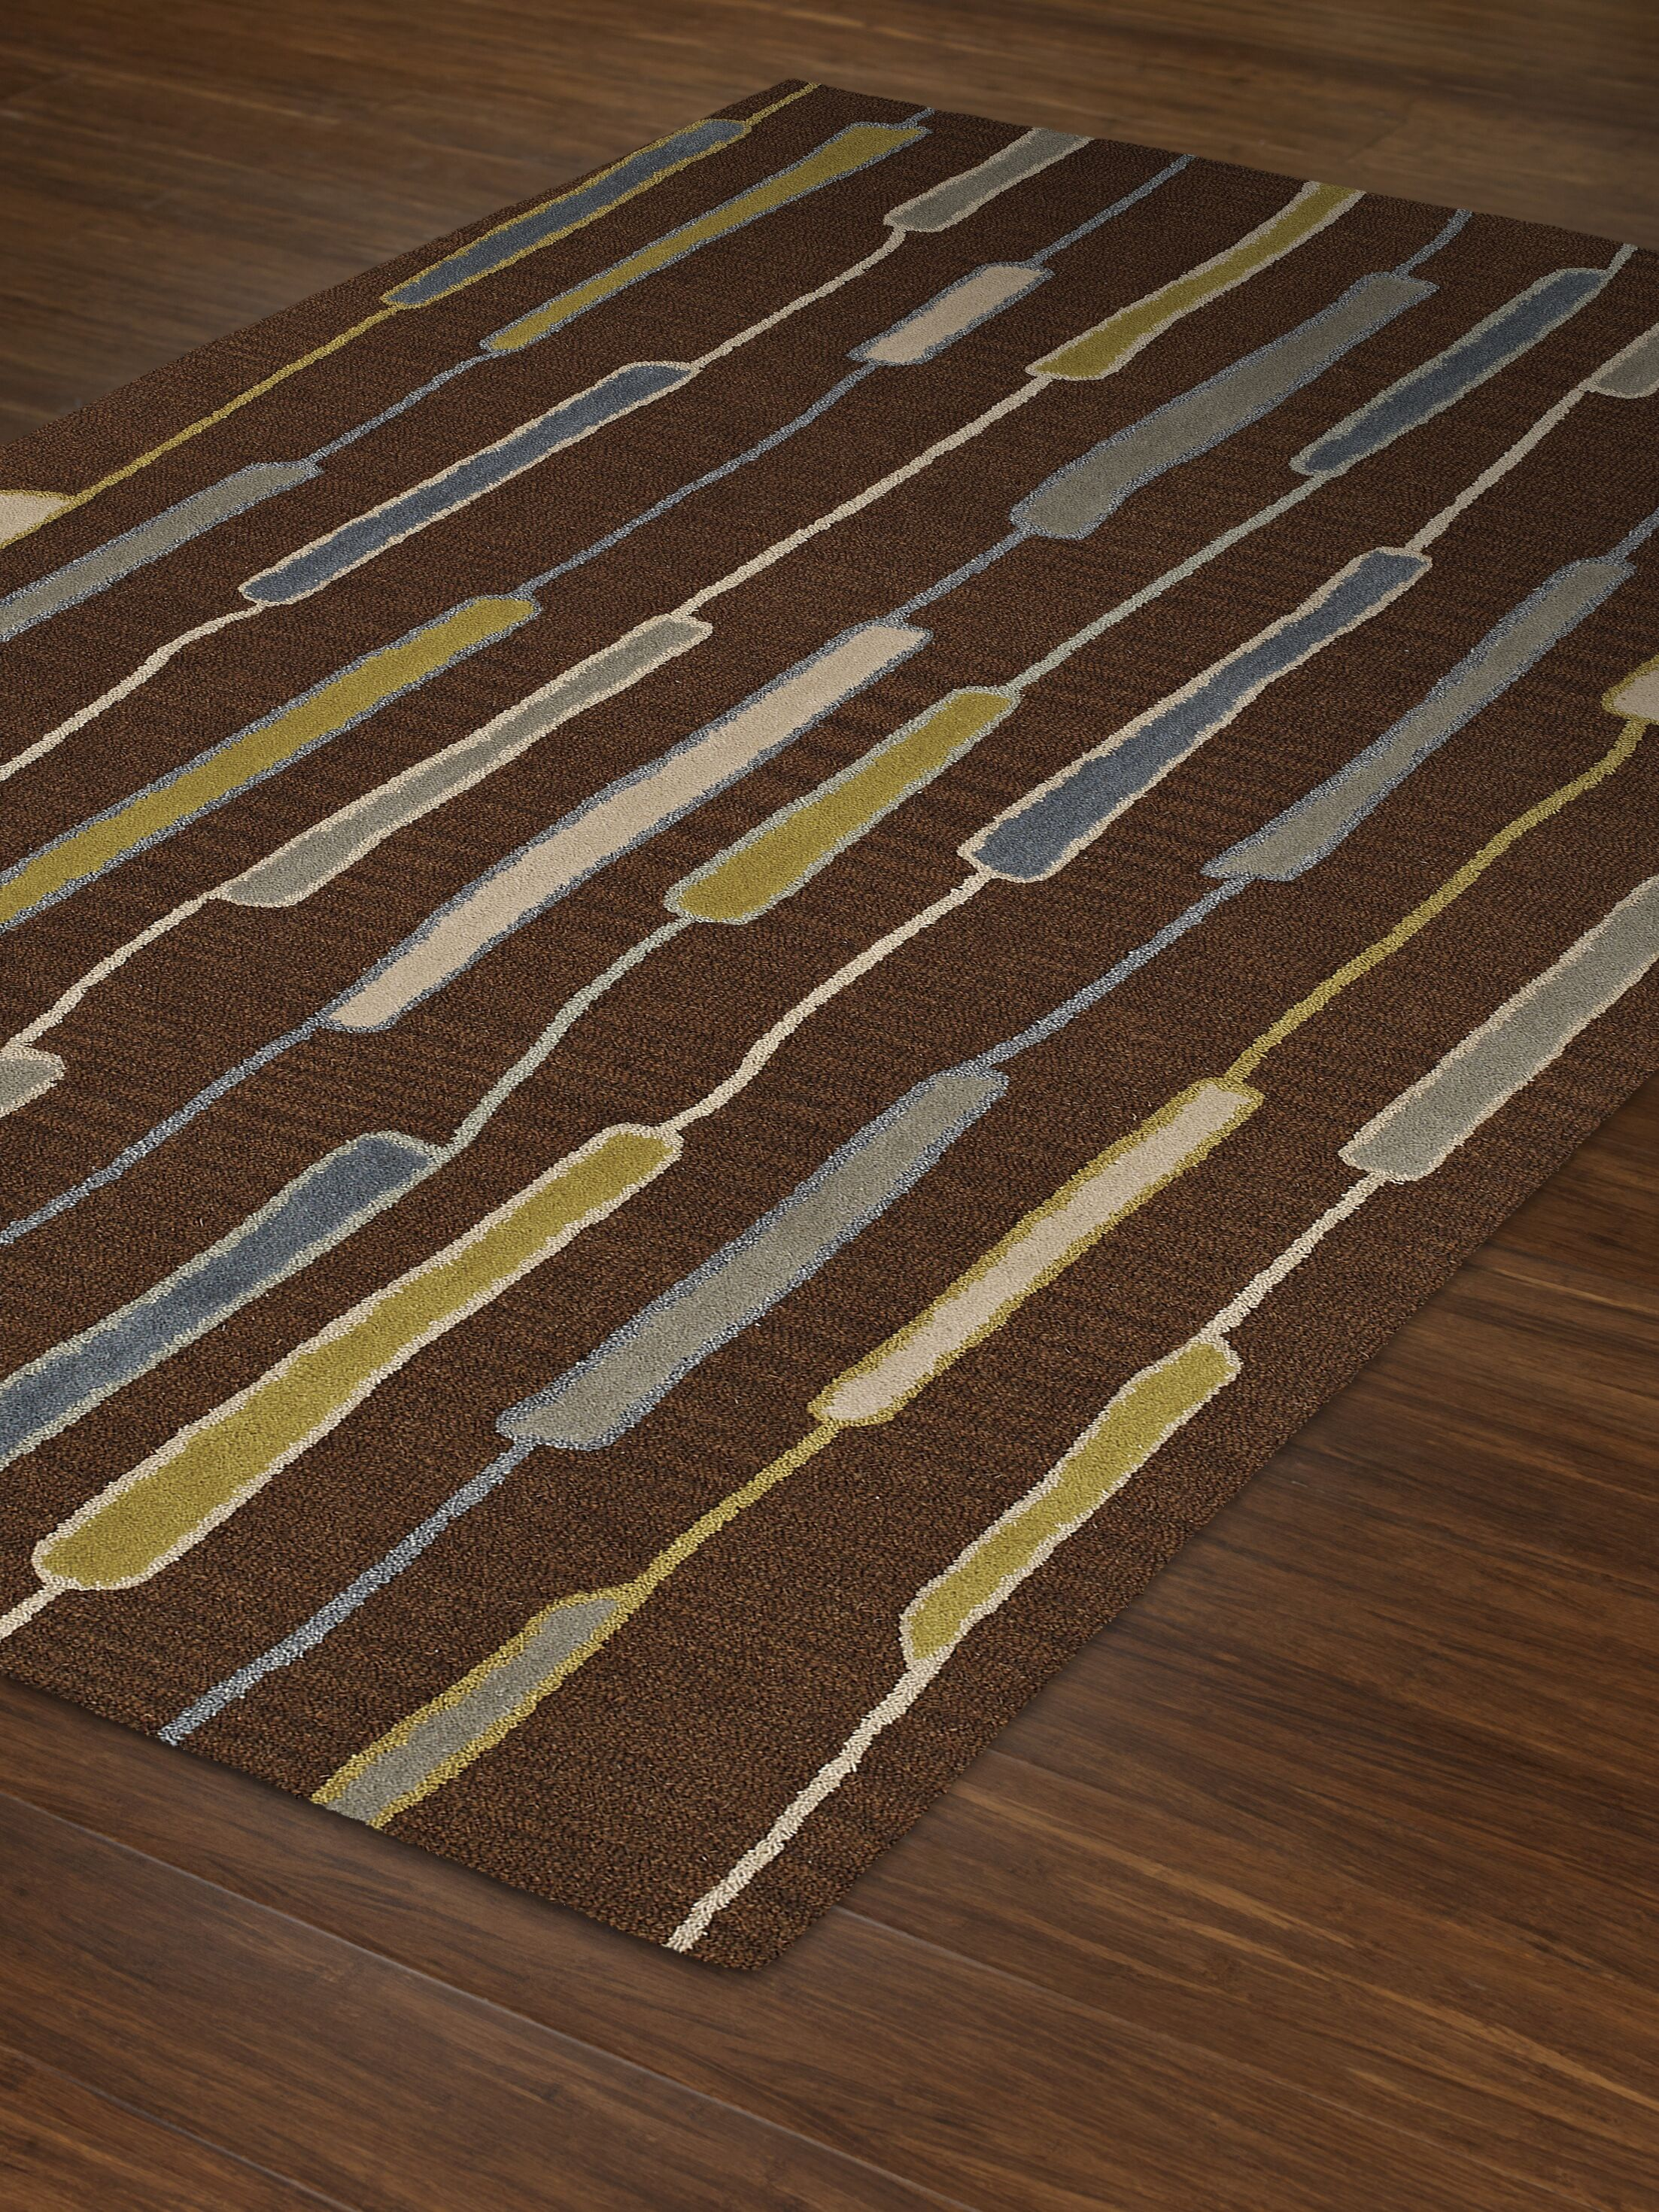 Ambiance Wool Chocolate Area Rug Rug Size: Rectangle 9' x 13'